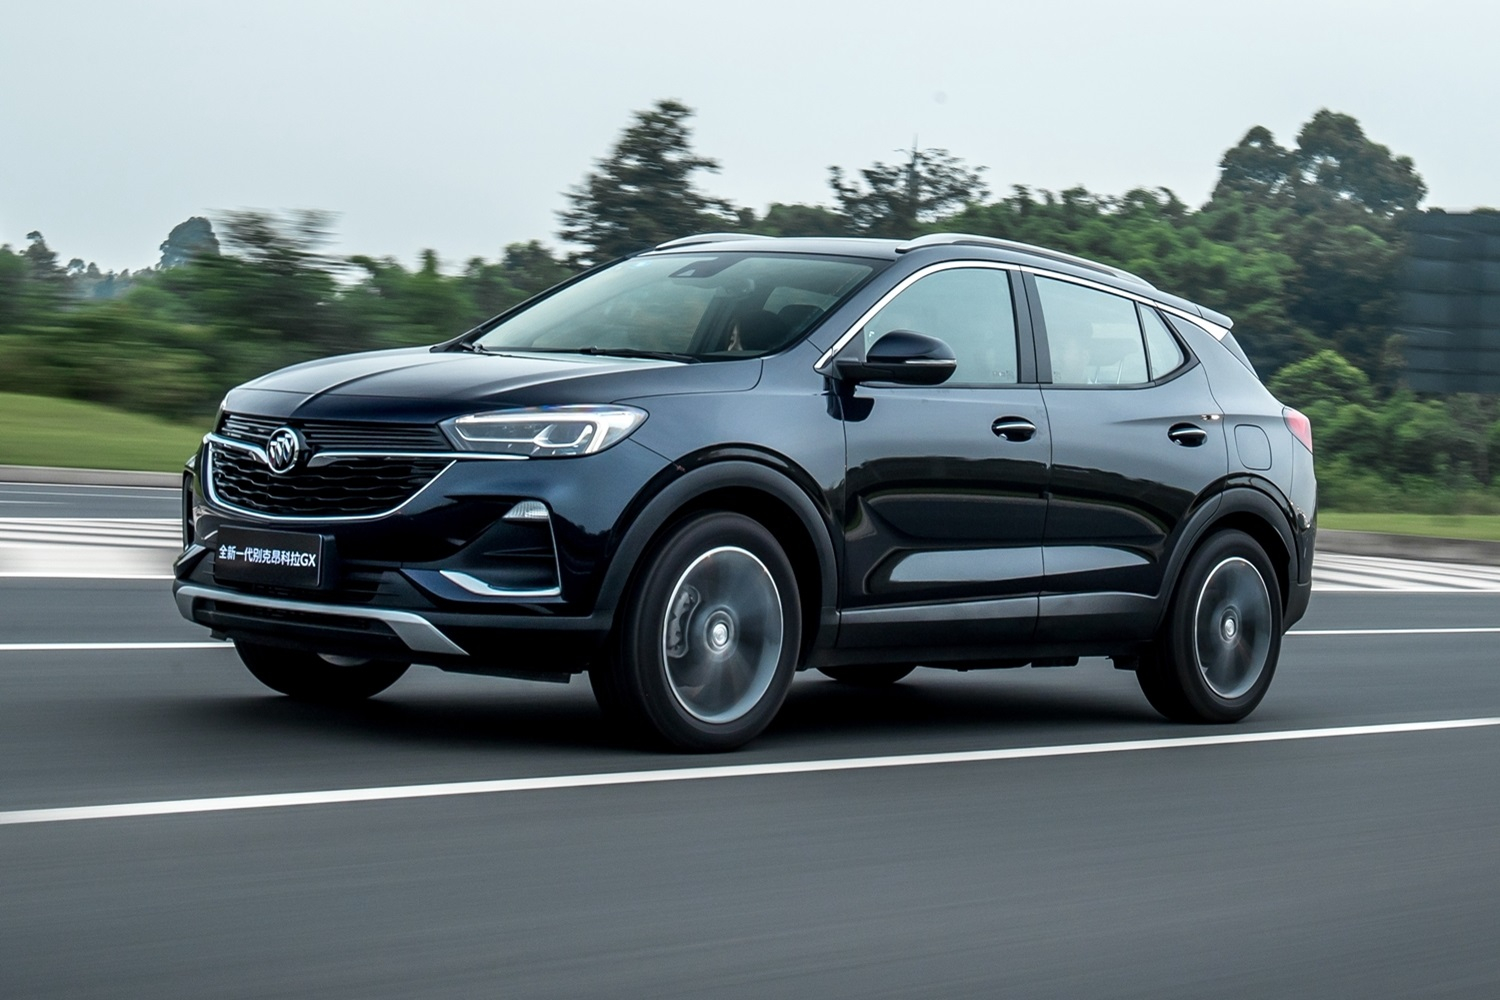 2020 Buick Encore Gx To Offer Two 3-Cylinder Turbo Engines 2022 Buick Encore Gx Configurations, Towing Capacity, Lease Deals